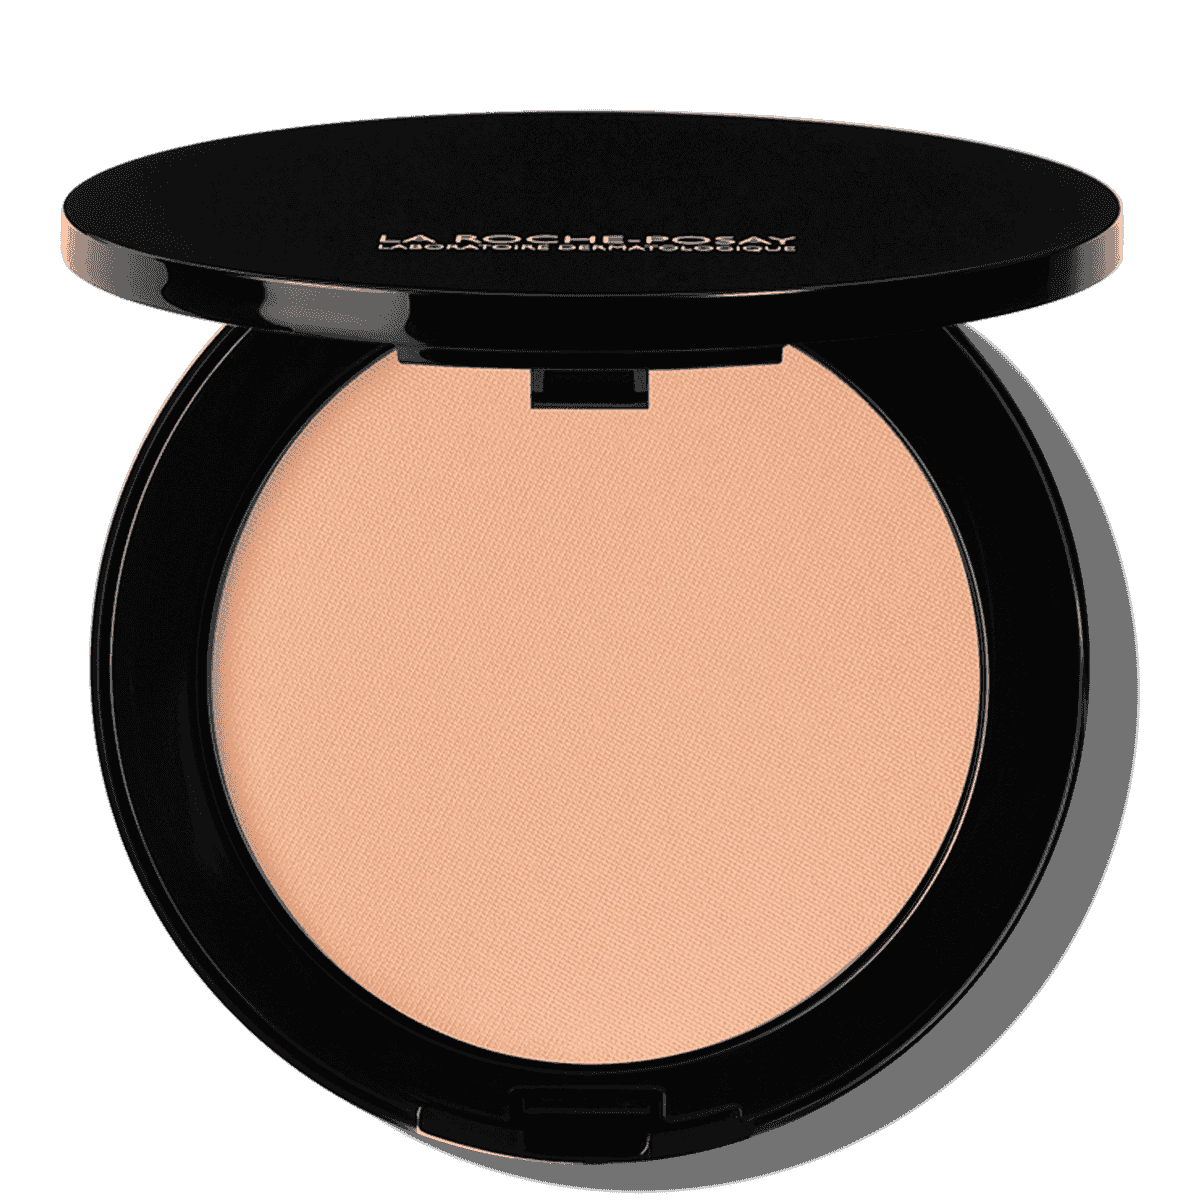 La Roche Posay Sensitive Toleriane Make up COMPACT_POWDER_11LightBeige